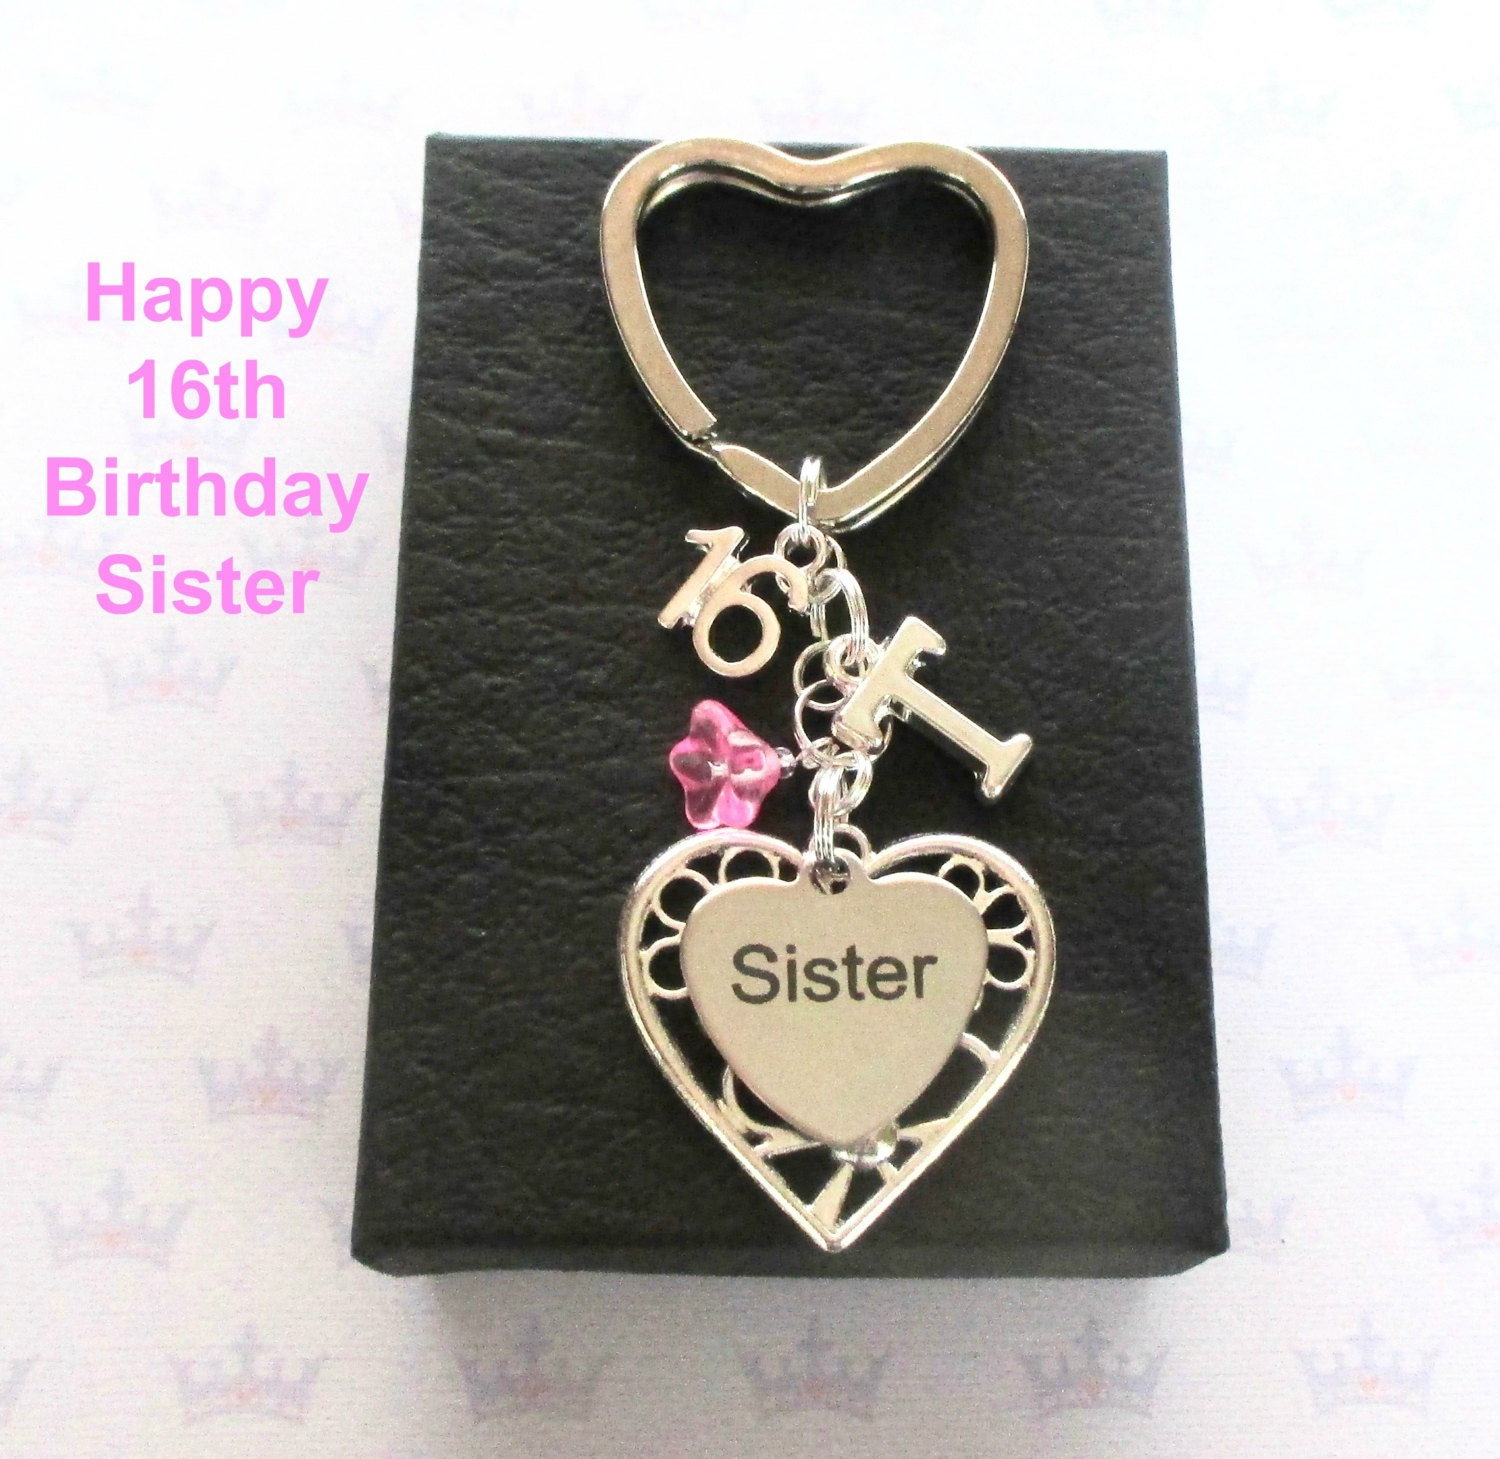 Sister 16th Birthday Gift 16th Keychain Sister Gift